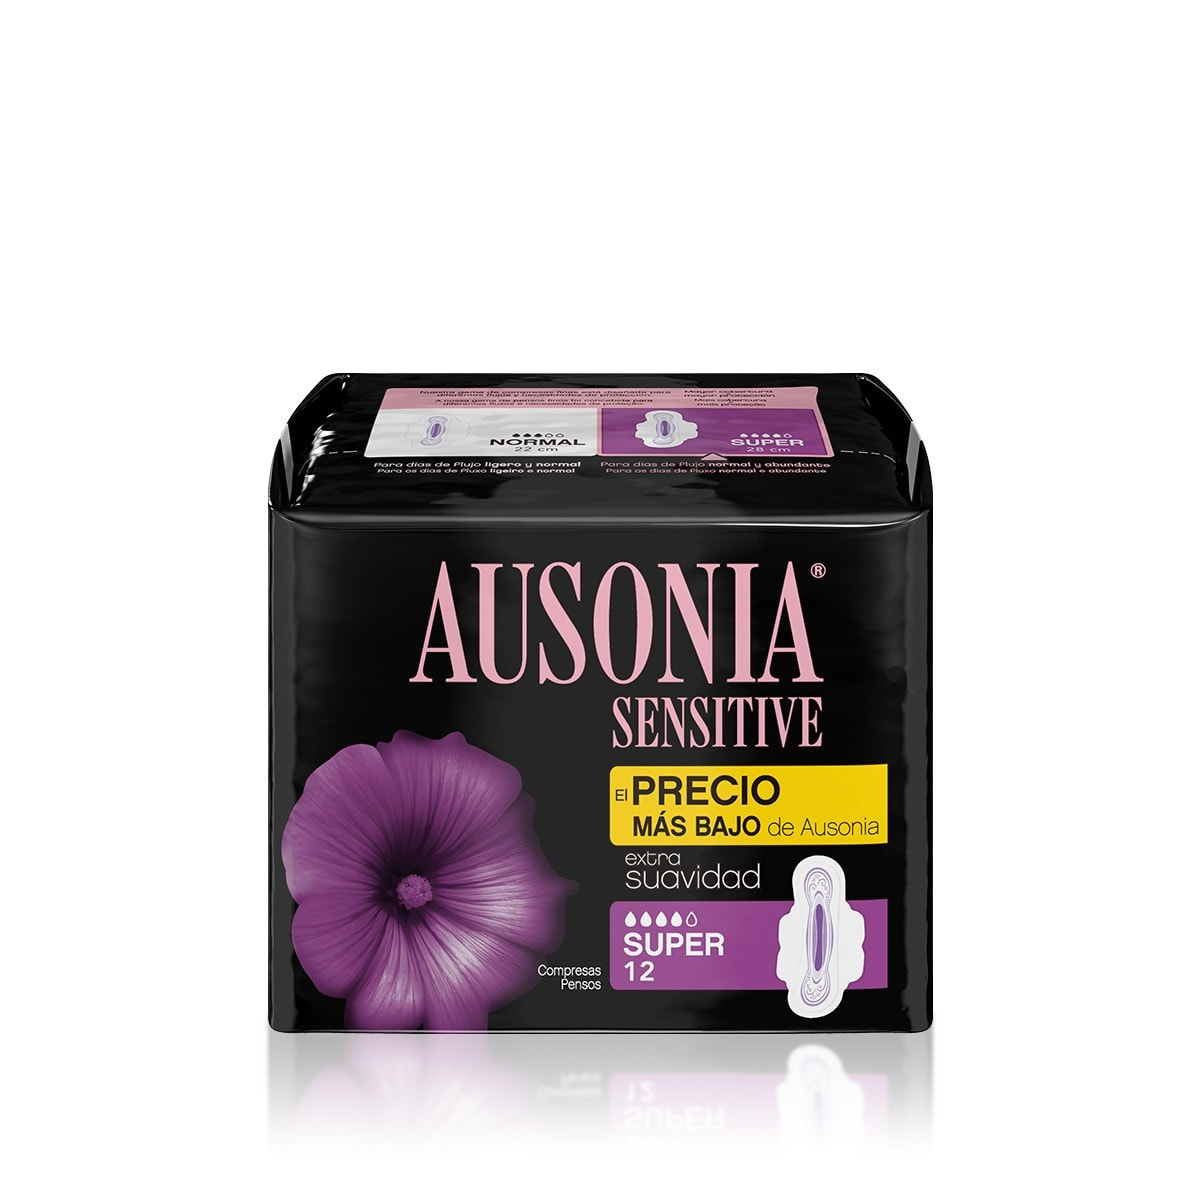 AUSONIA Sensitive Super